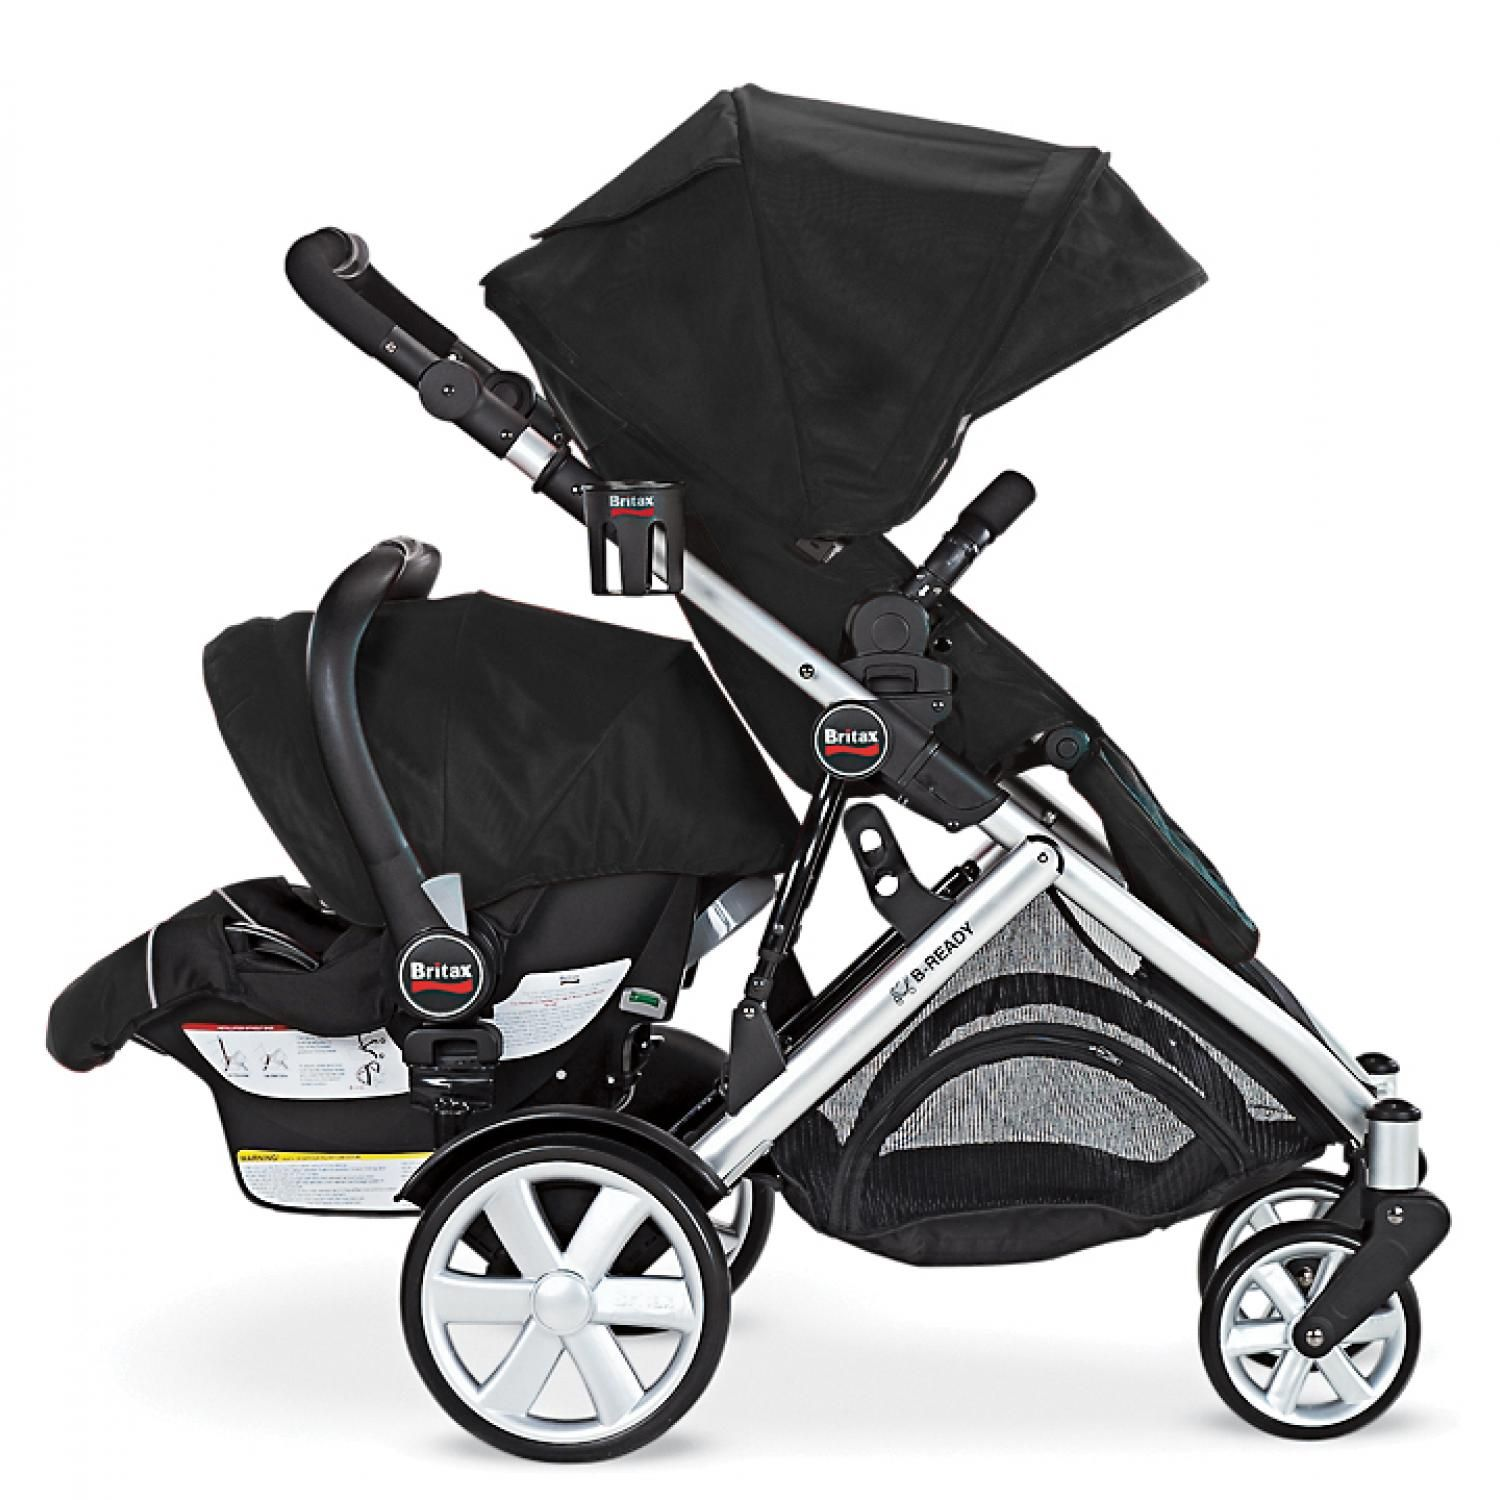 How to Buy a Stroller Double strollers, Britax b ready